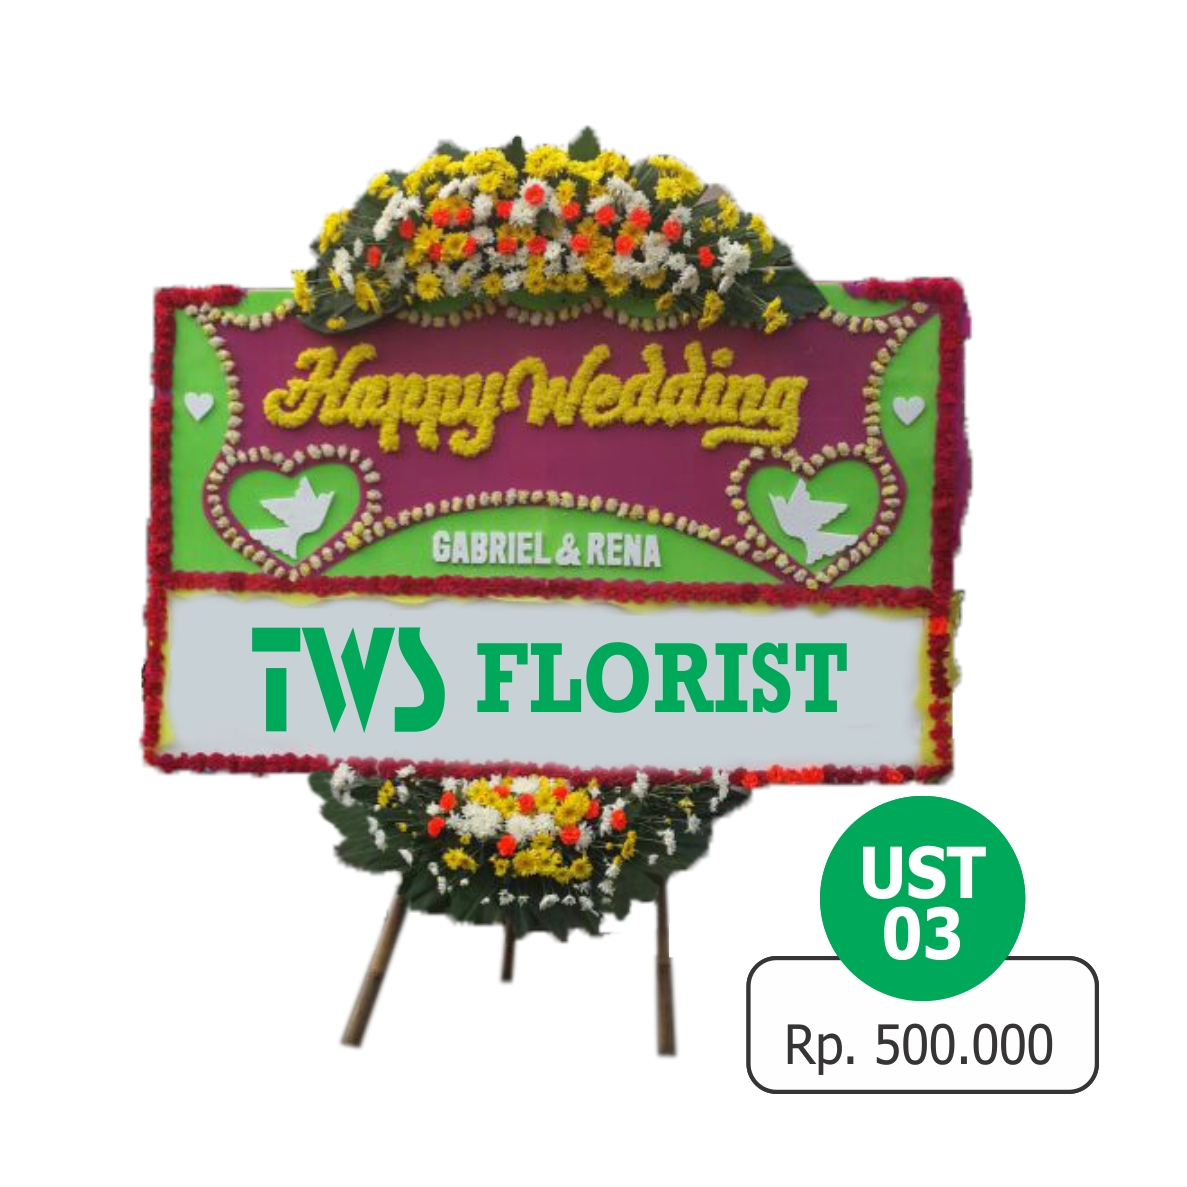 online flower shop Send the freshest flowers sourced directly from farms wide selection of floral arrangements 99% on-time flower delivery 7-day freshness guaranteed.